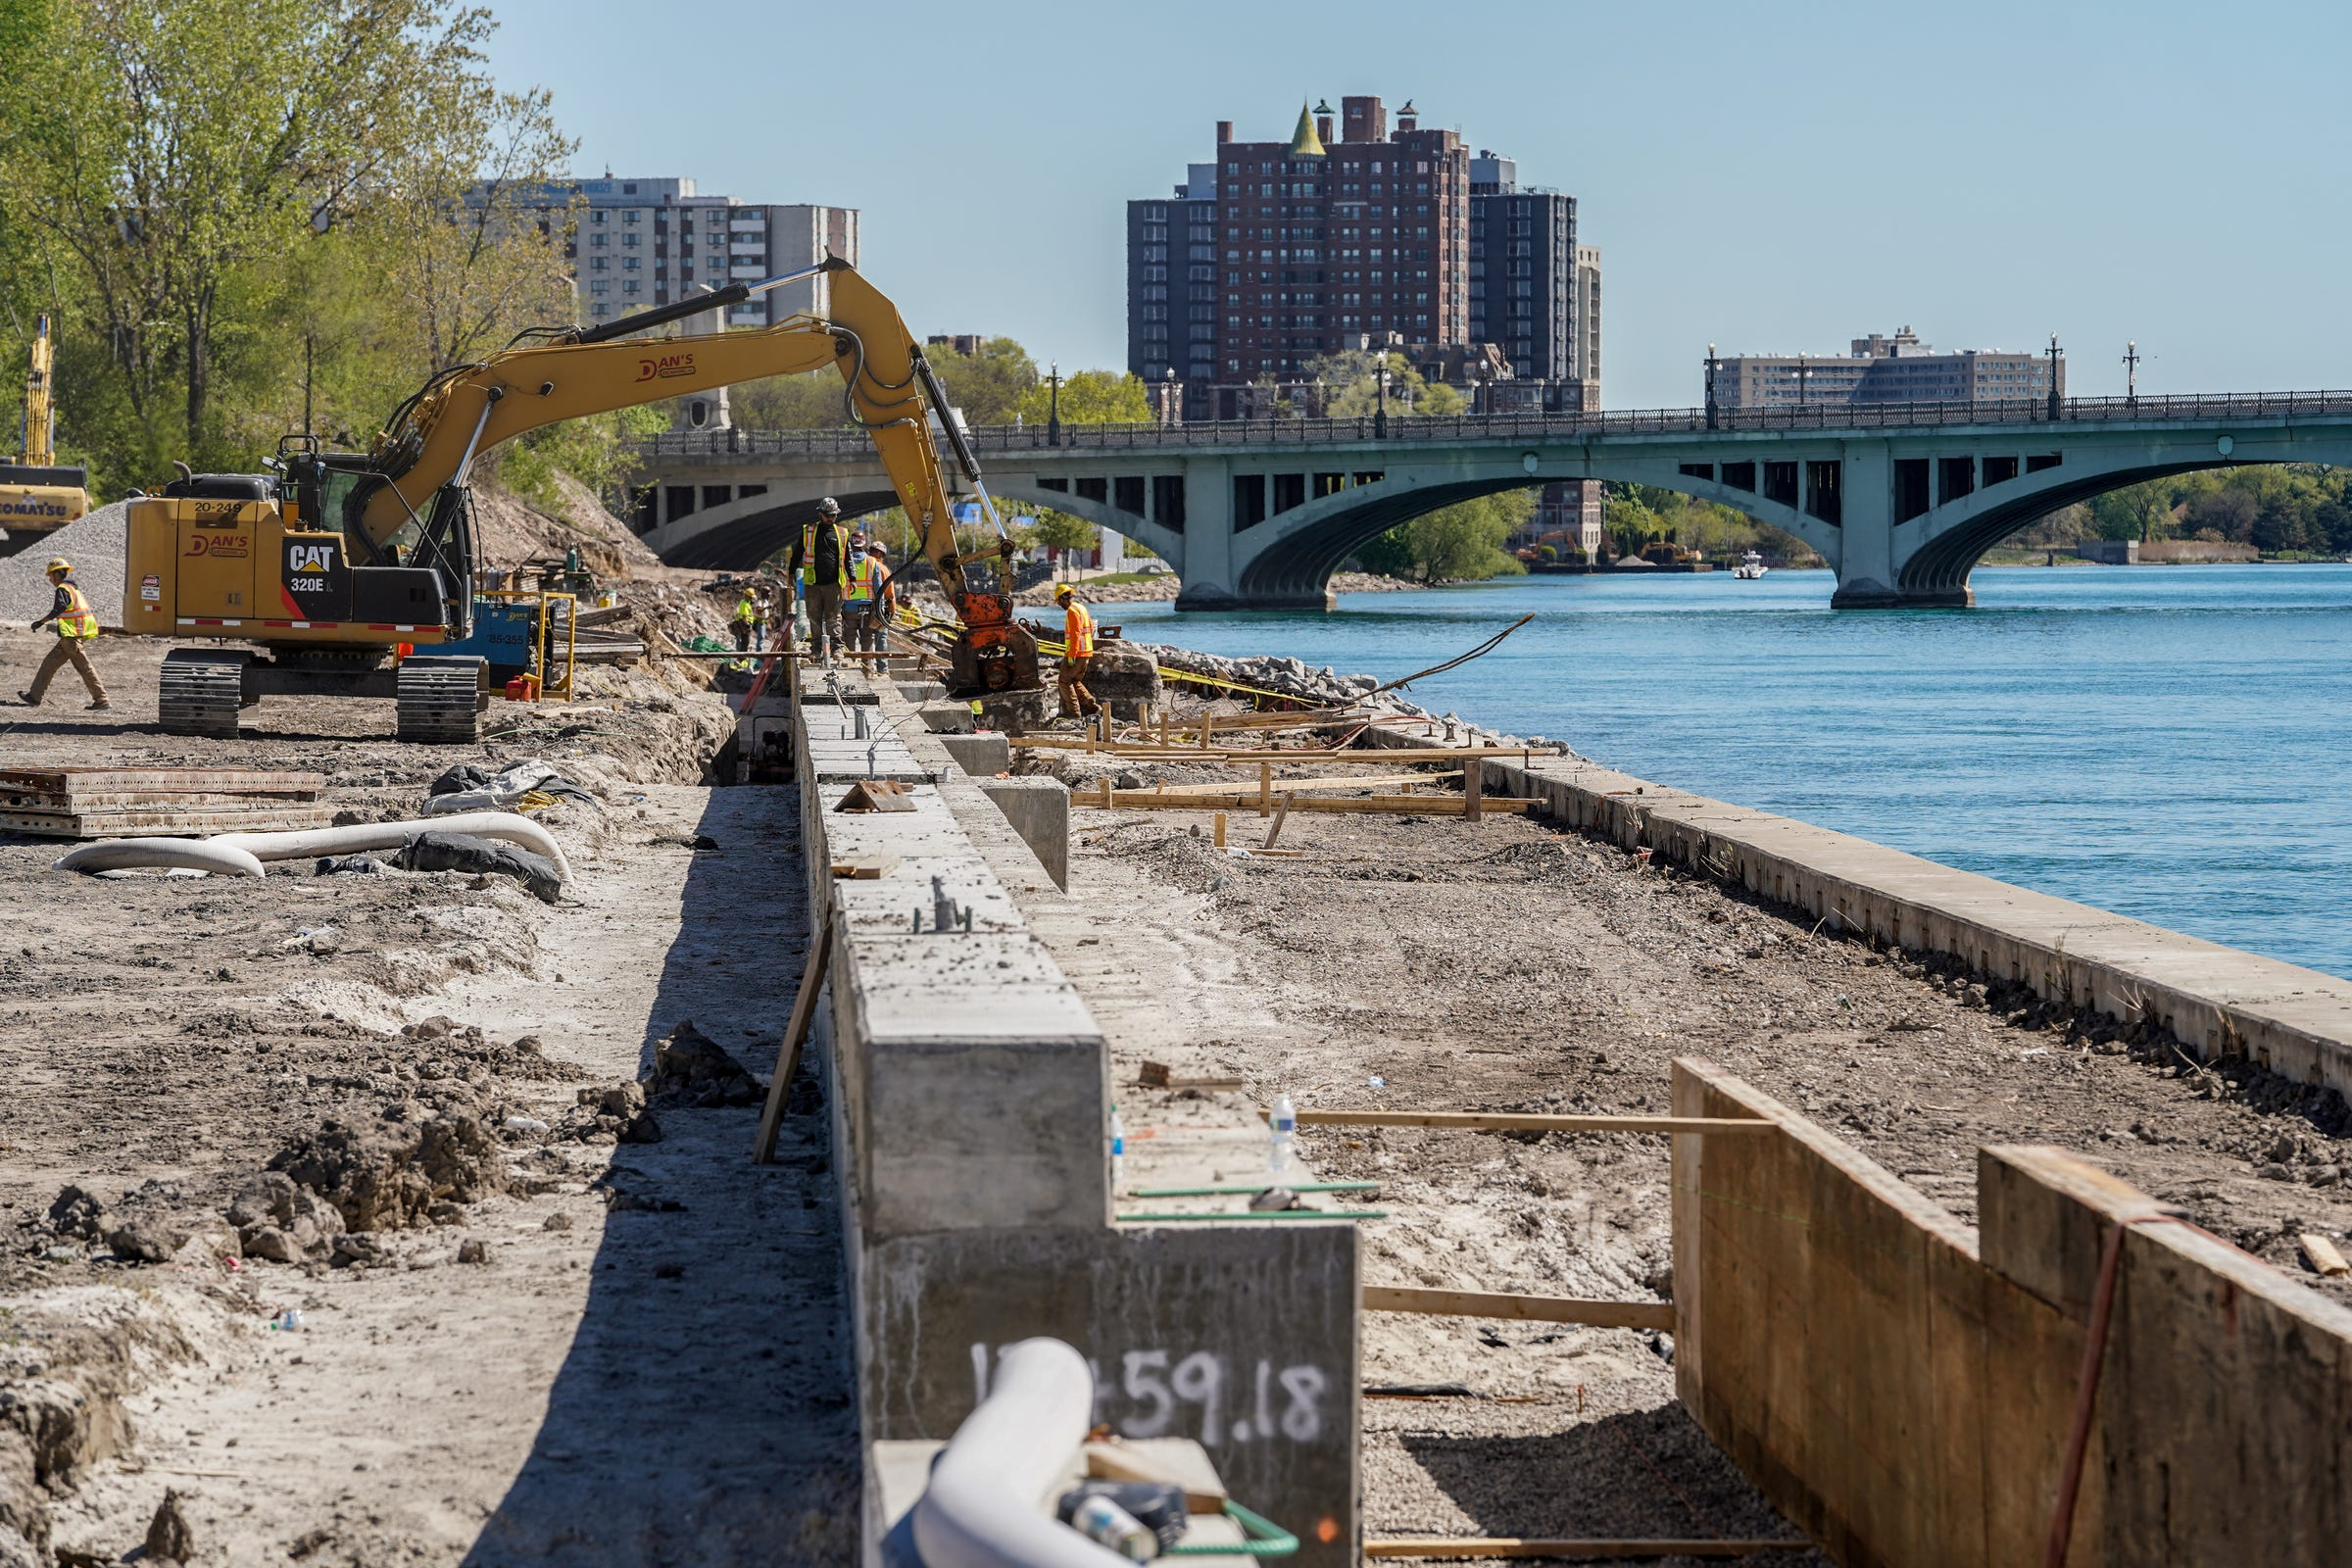 Work begins on Detroit's east RiverWalk, a path expected to connect RenCen to Belle Isle